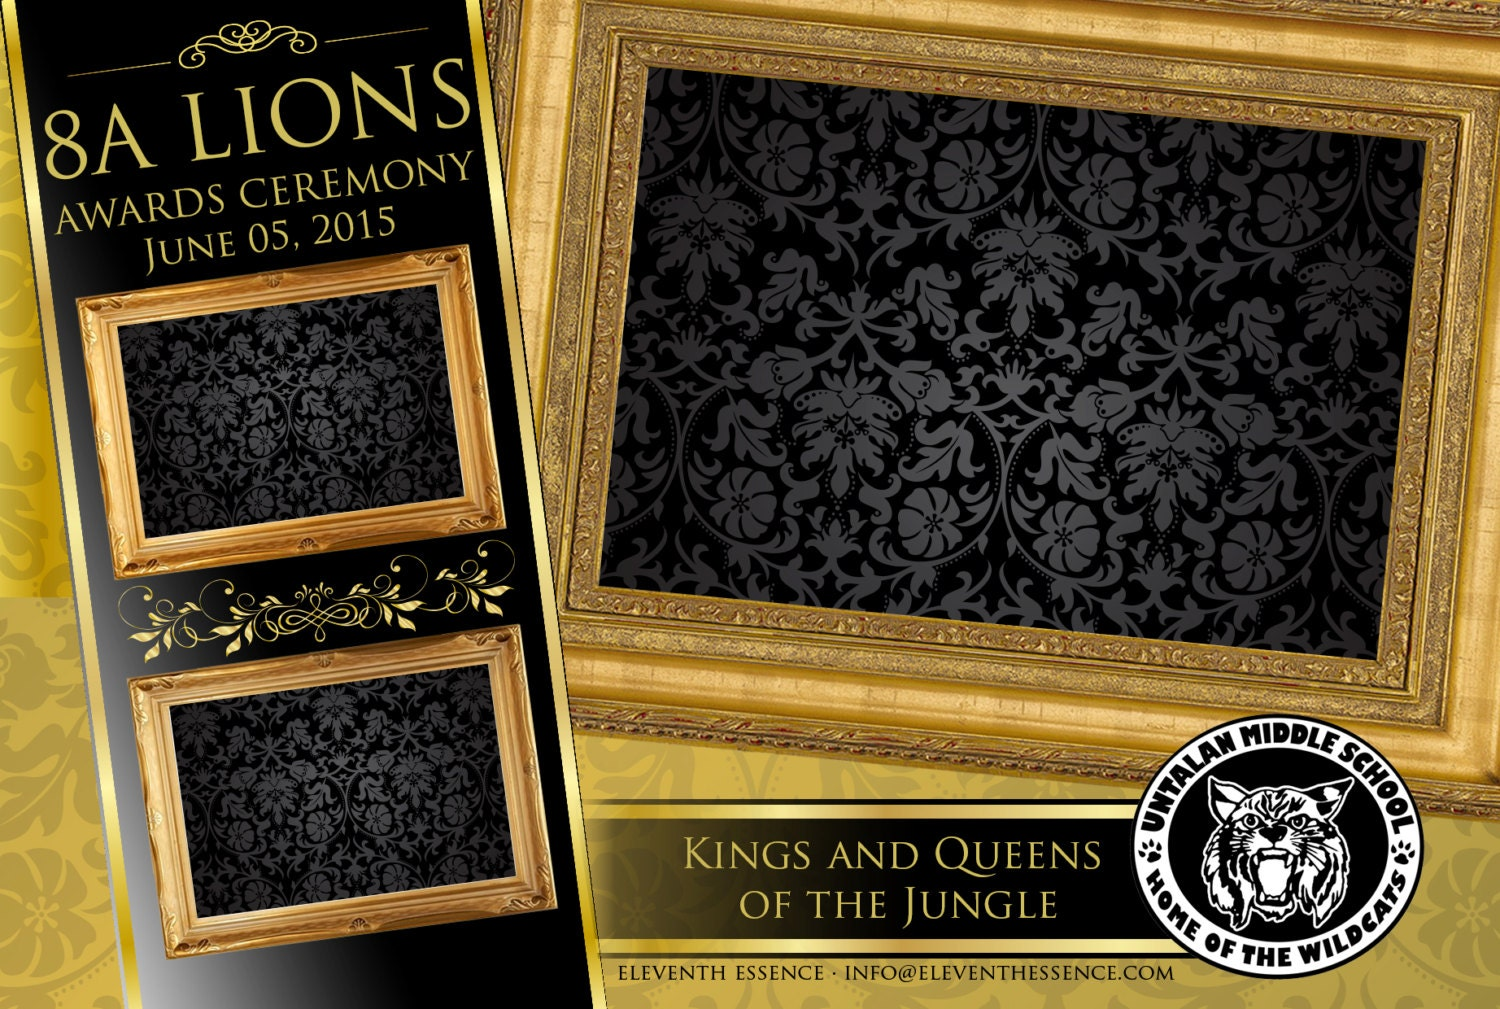 Photo booth design layout template gold and black royalty photo booth design layout template gold and black royalty theme psd file jeuxipadfo Image collections